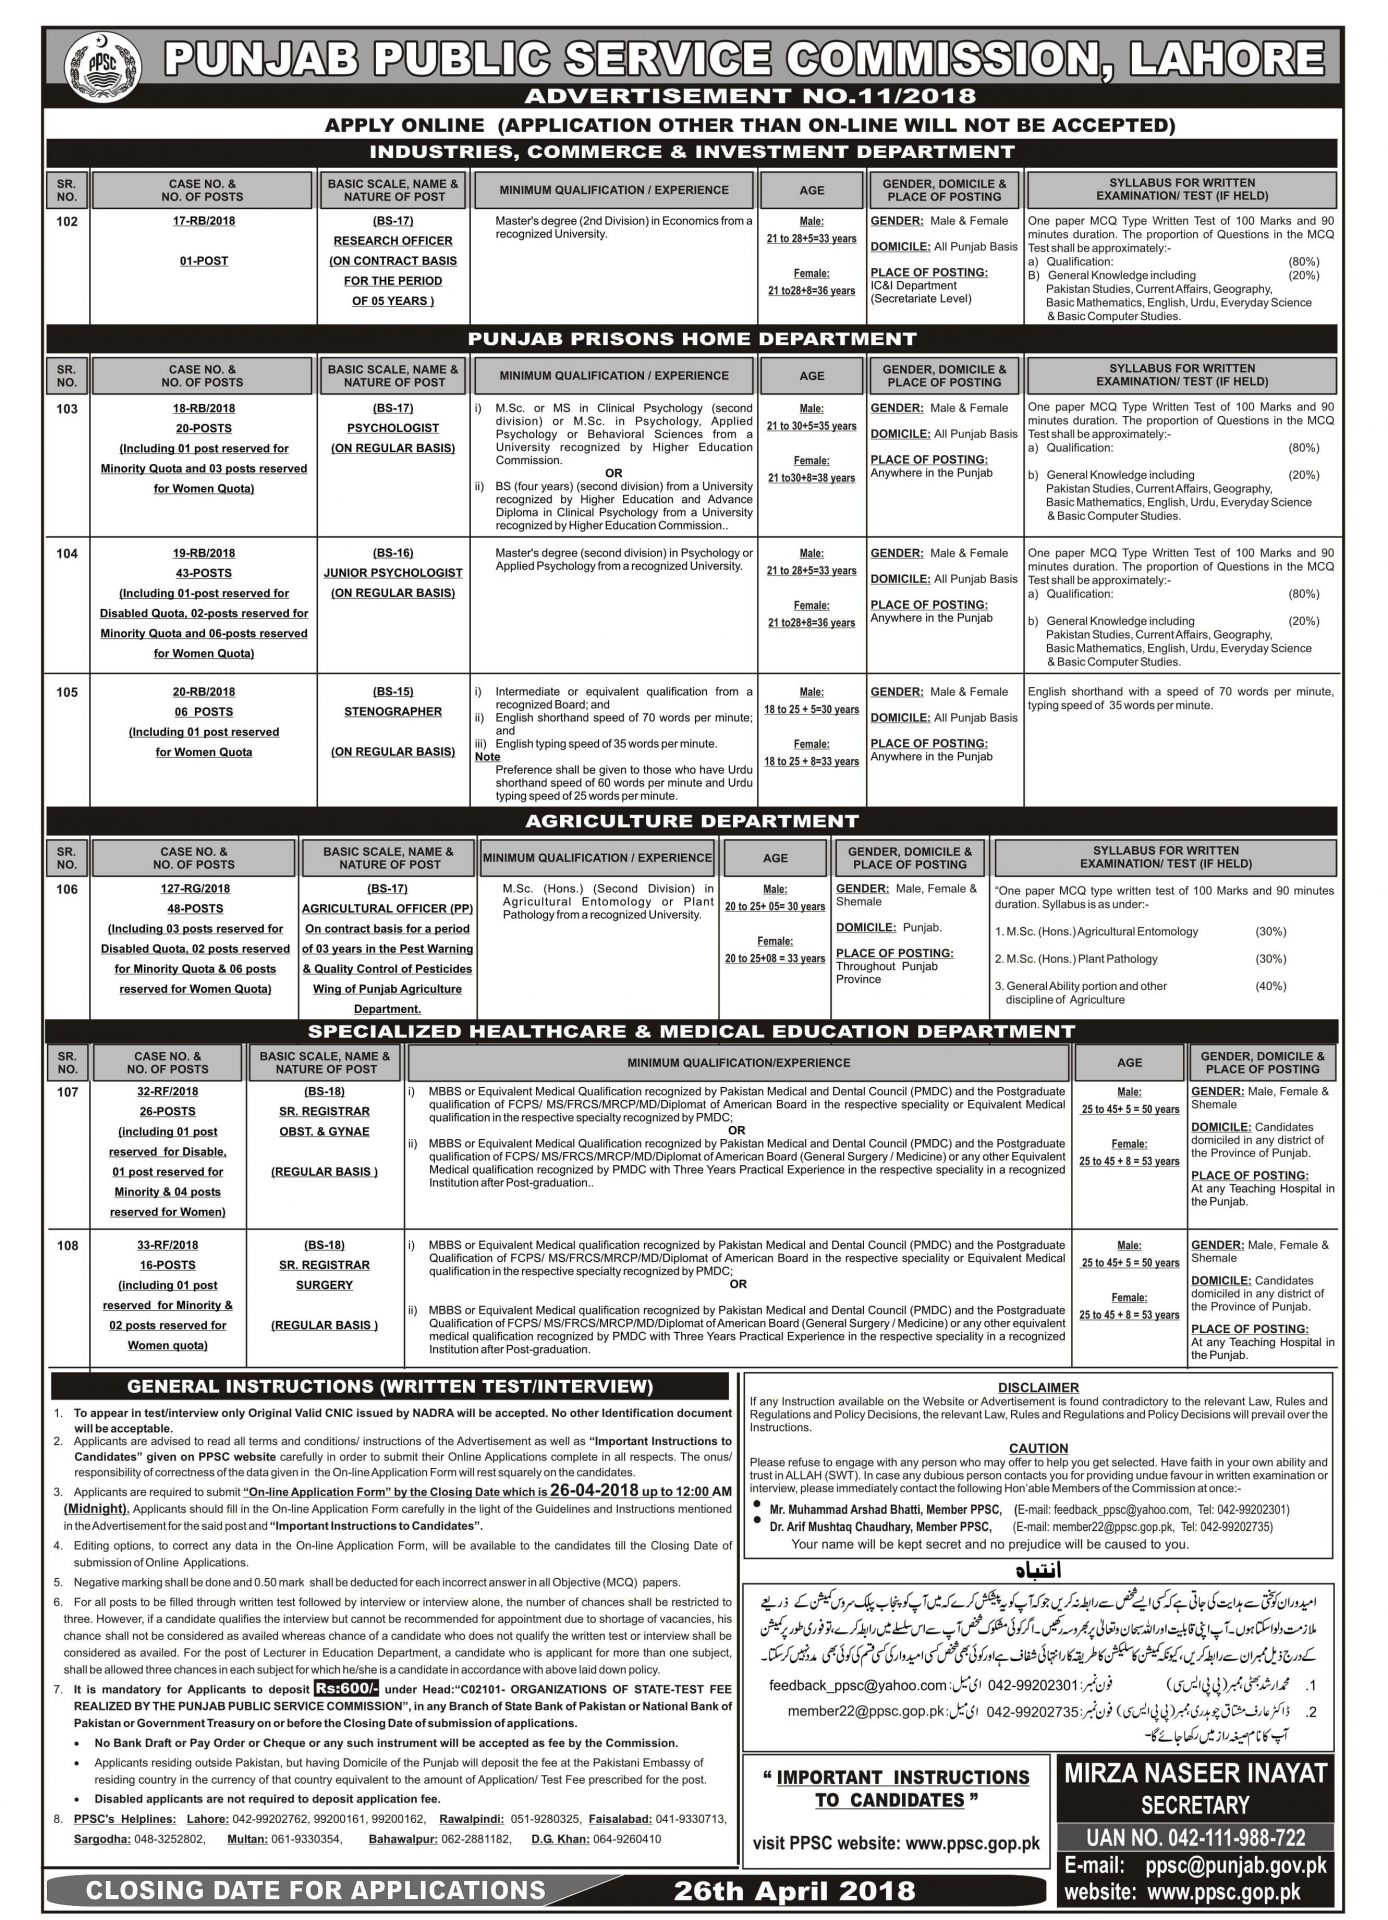 PPSC Jobs 2018 Punjab Public Service Commission www.ppsc.gop.pk Apply Online